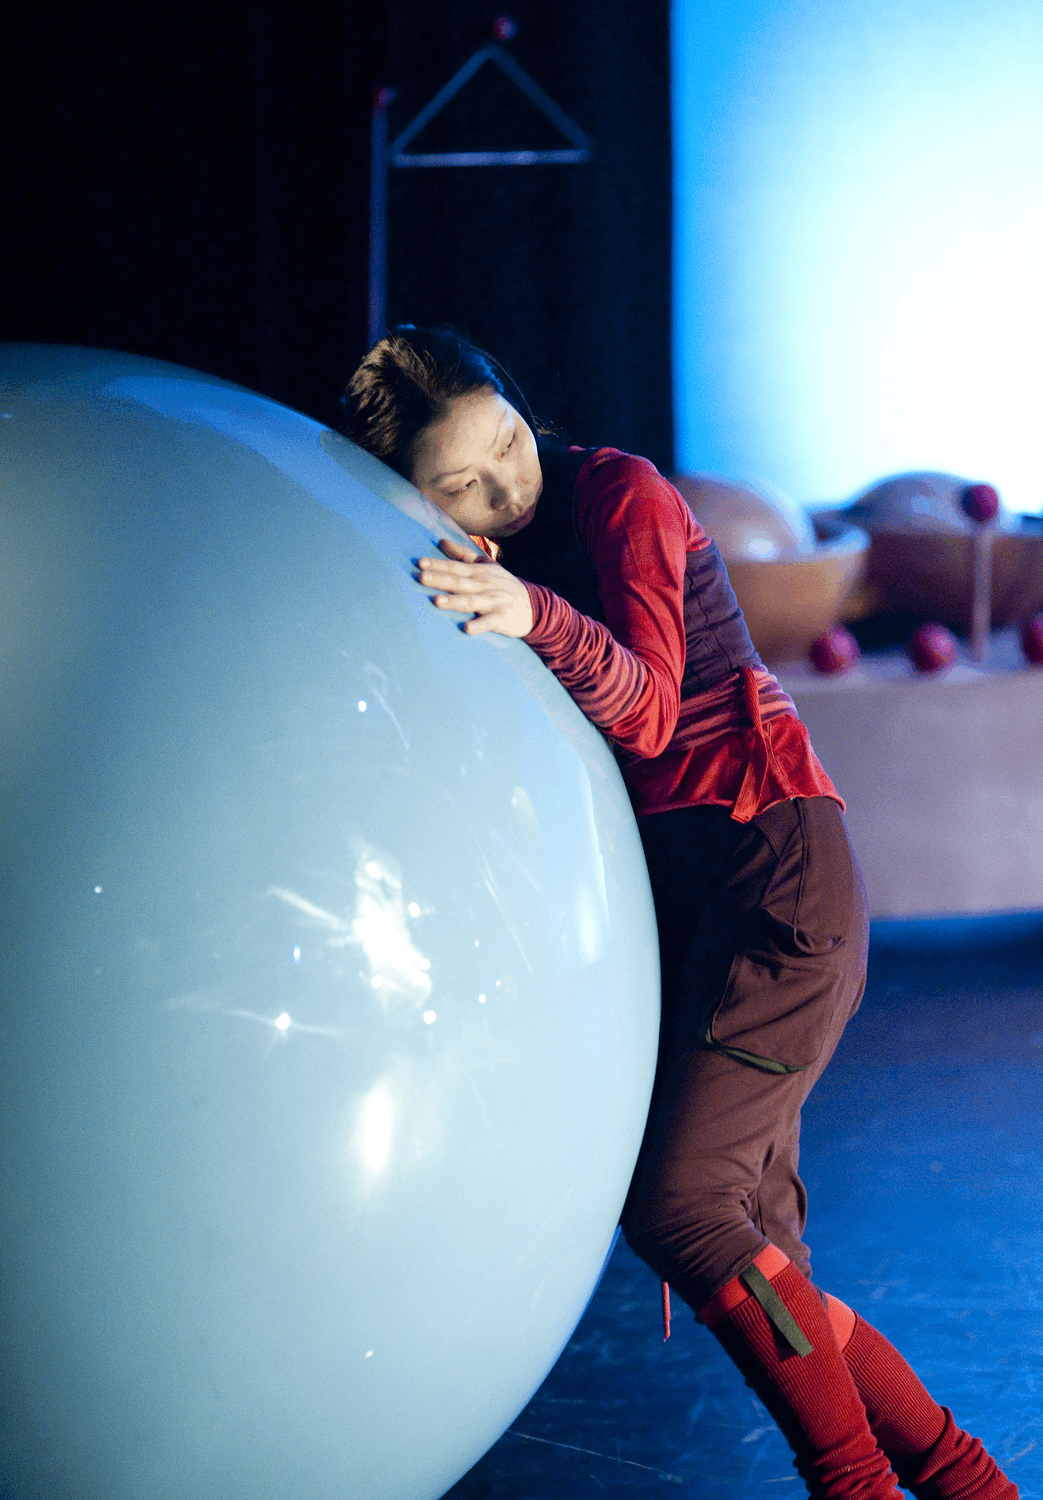 percussionist Nao Masuda hugs a gigantic ball, which is bigger than she is